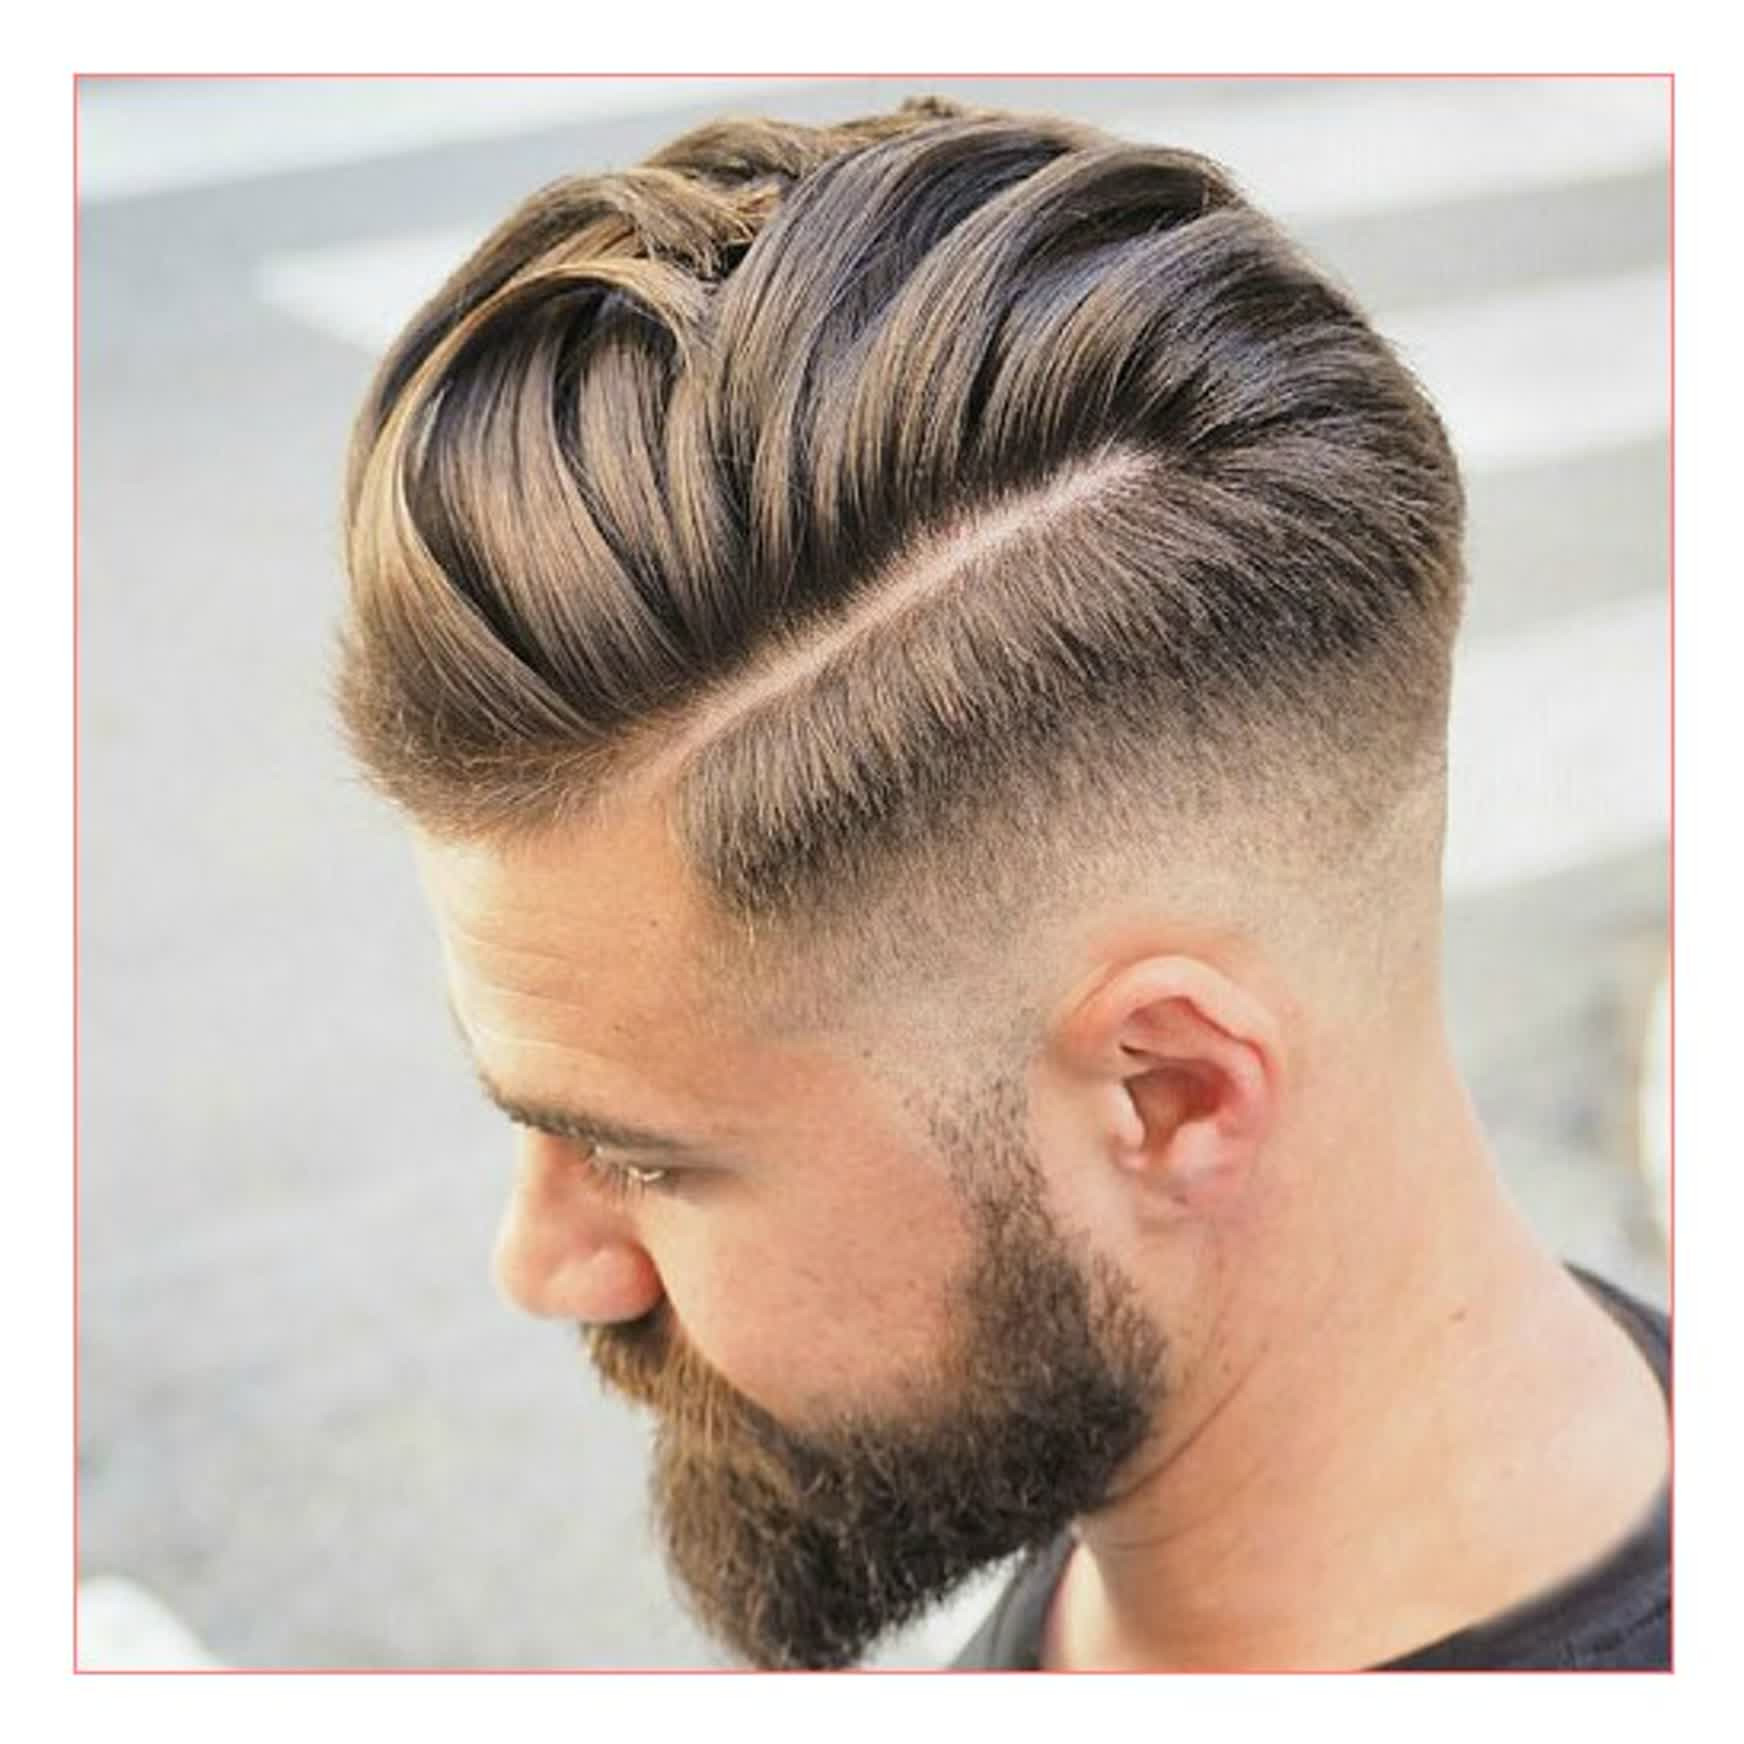 Undercut Fade Hairstyle  Low Fade Undercut Haircut